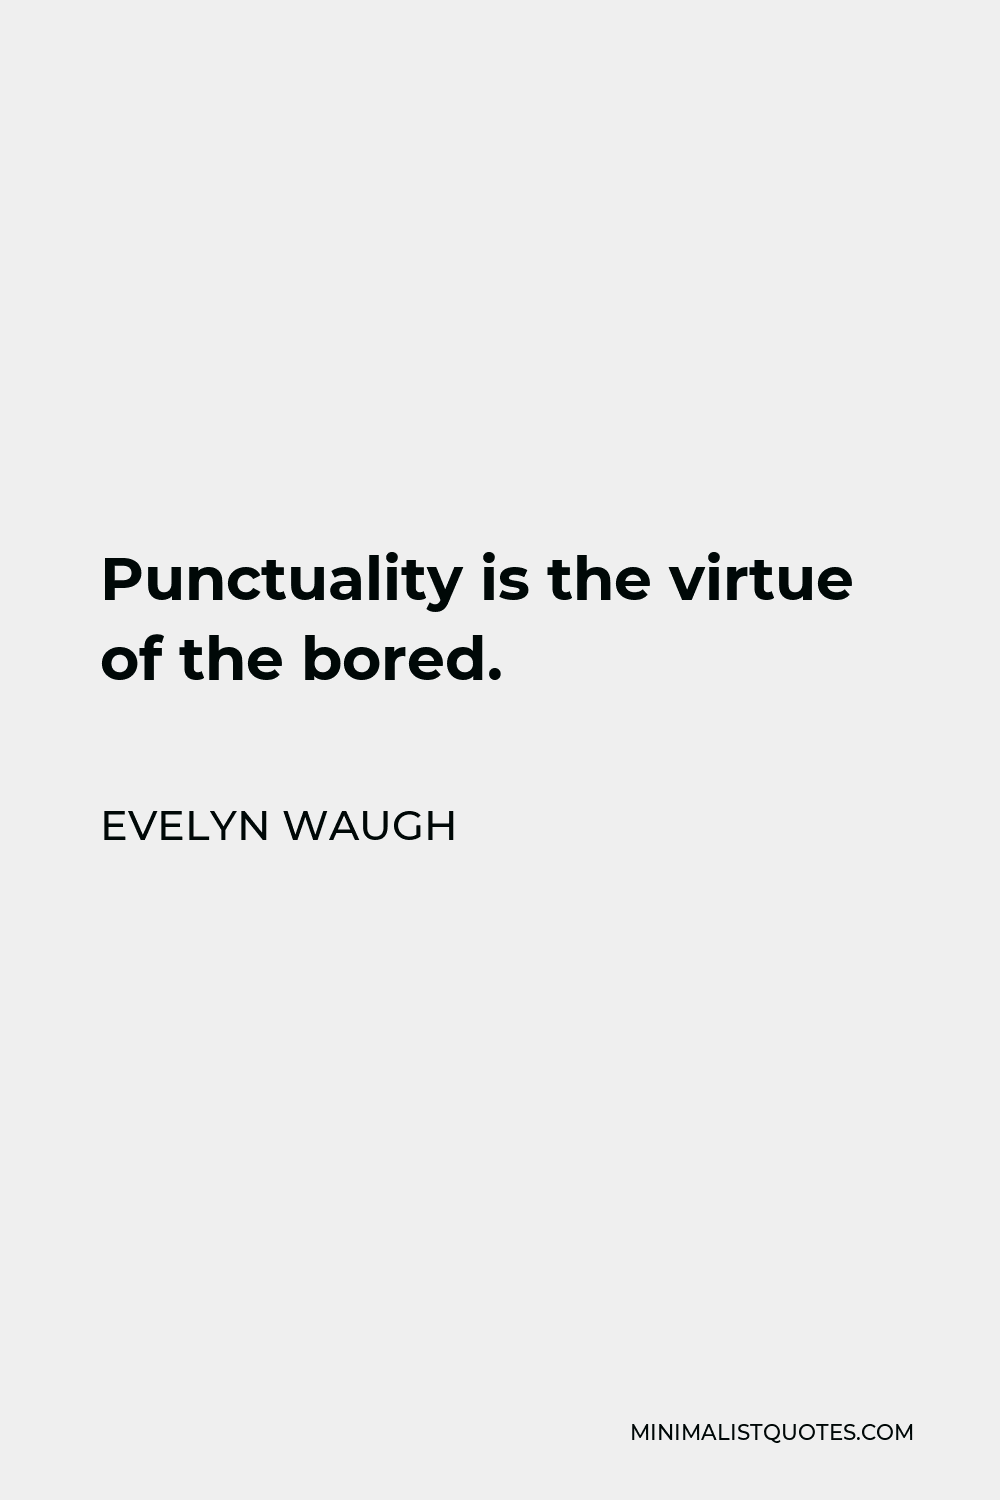 Evelyn Waugh Quote - Punctuality is the virtue of the bored.